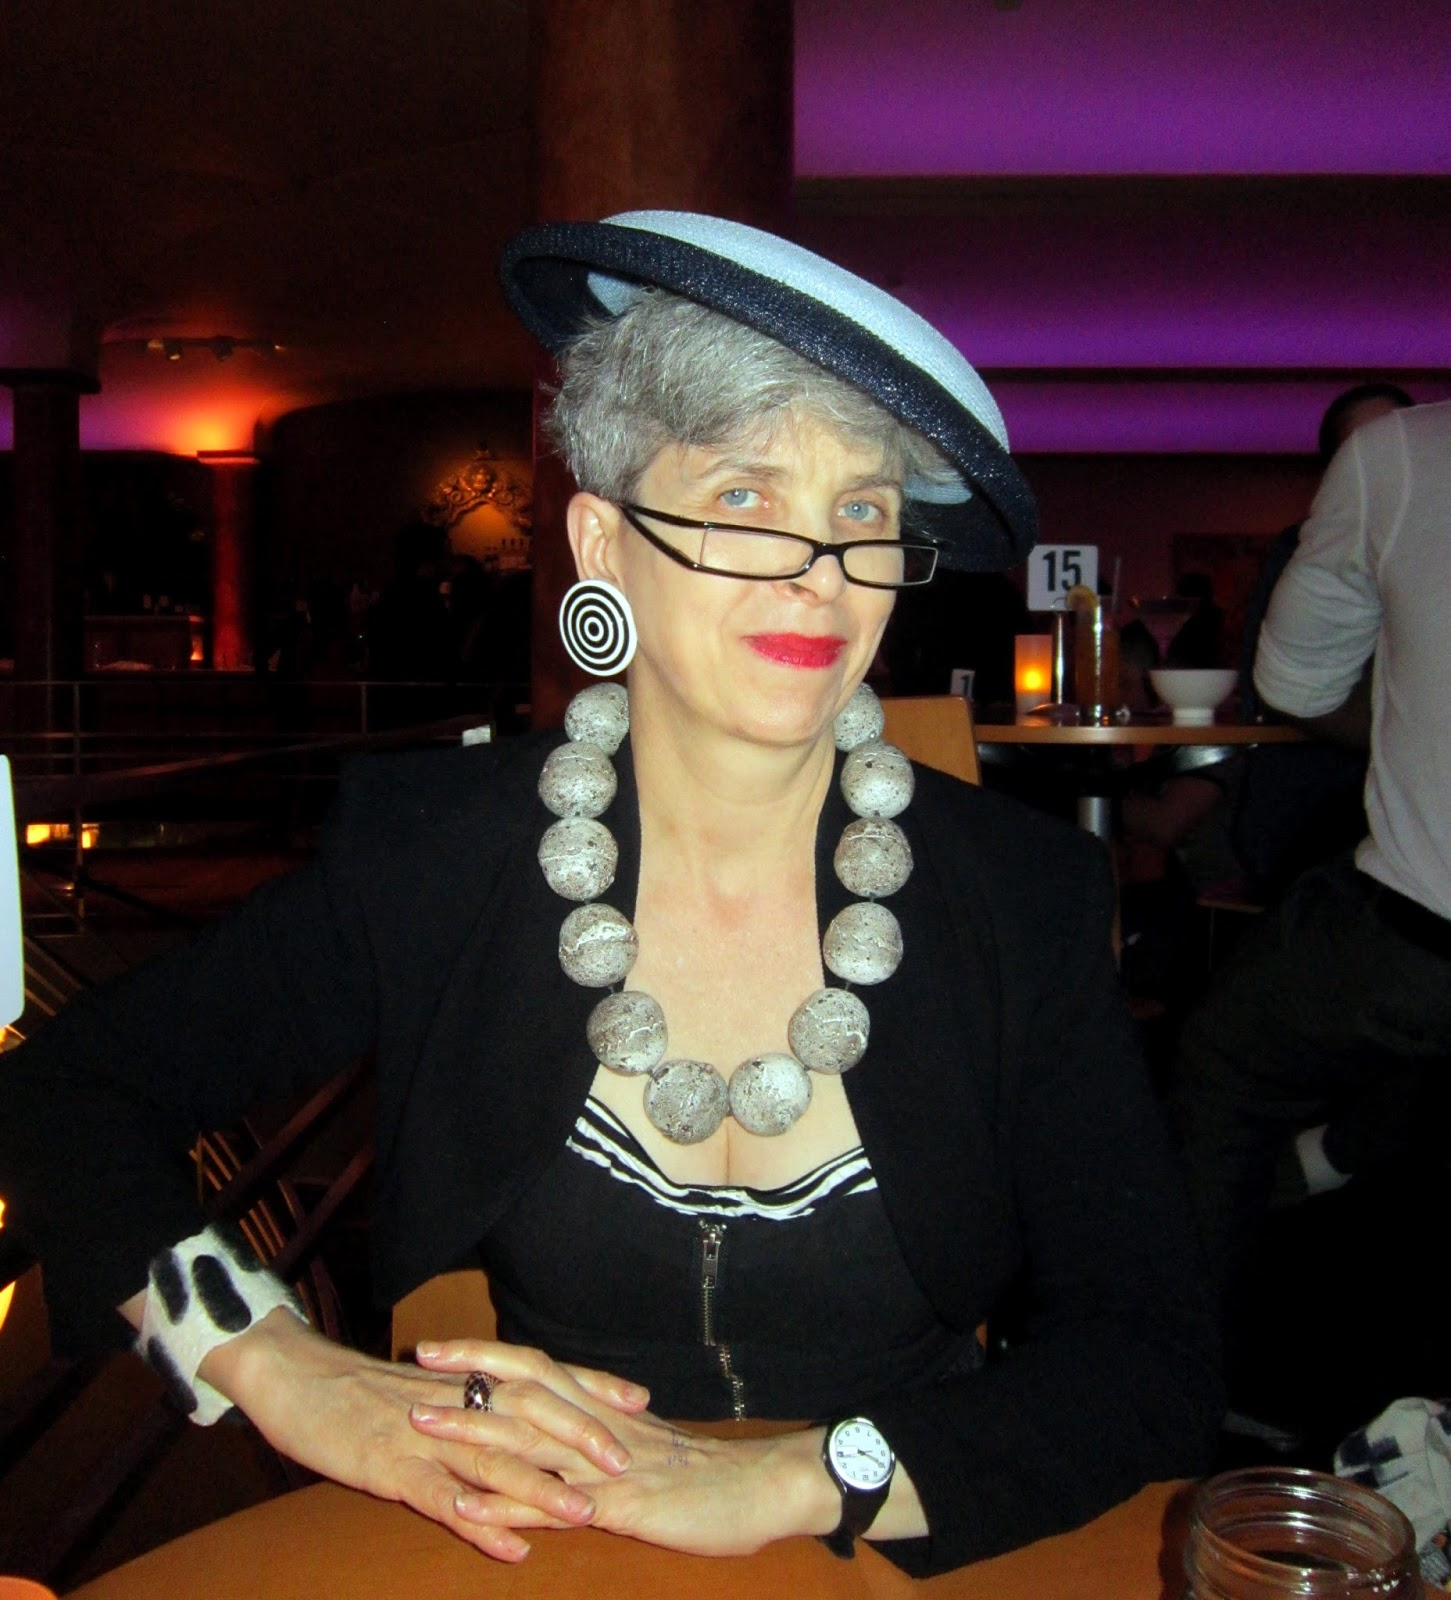 Valerie Idiosyncratic Instagram Hat: Idiosyncratic Fashionistas: Count Your Blessings